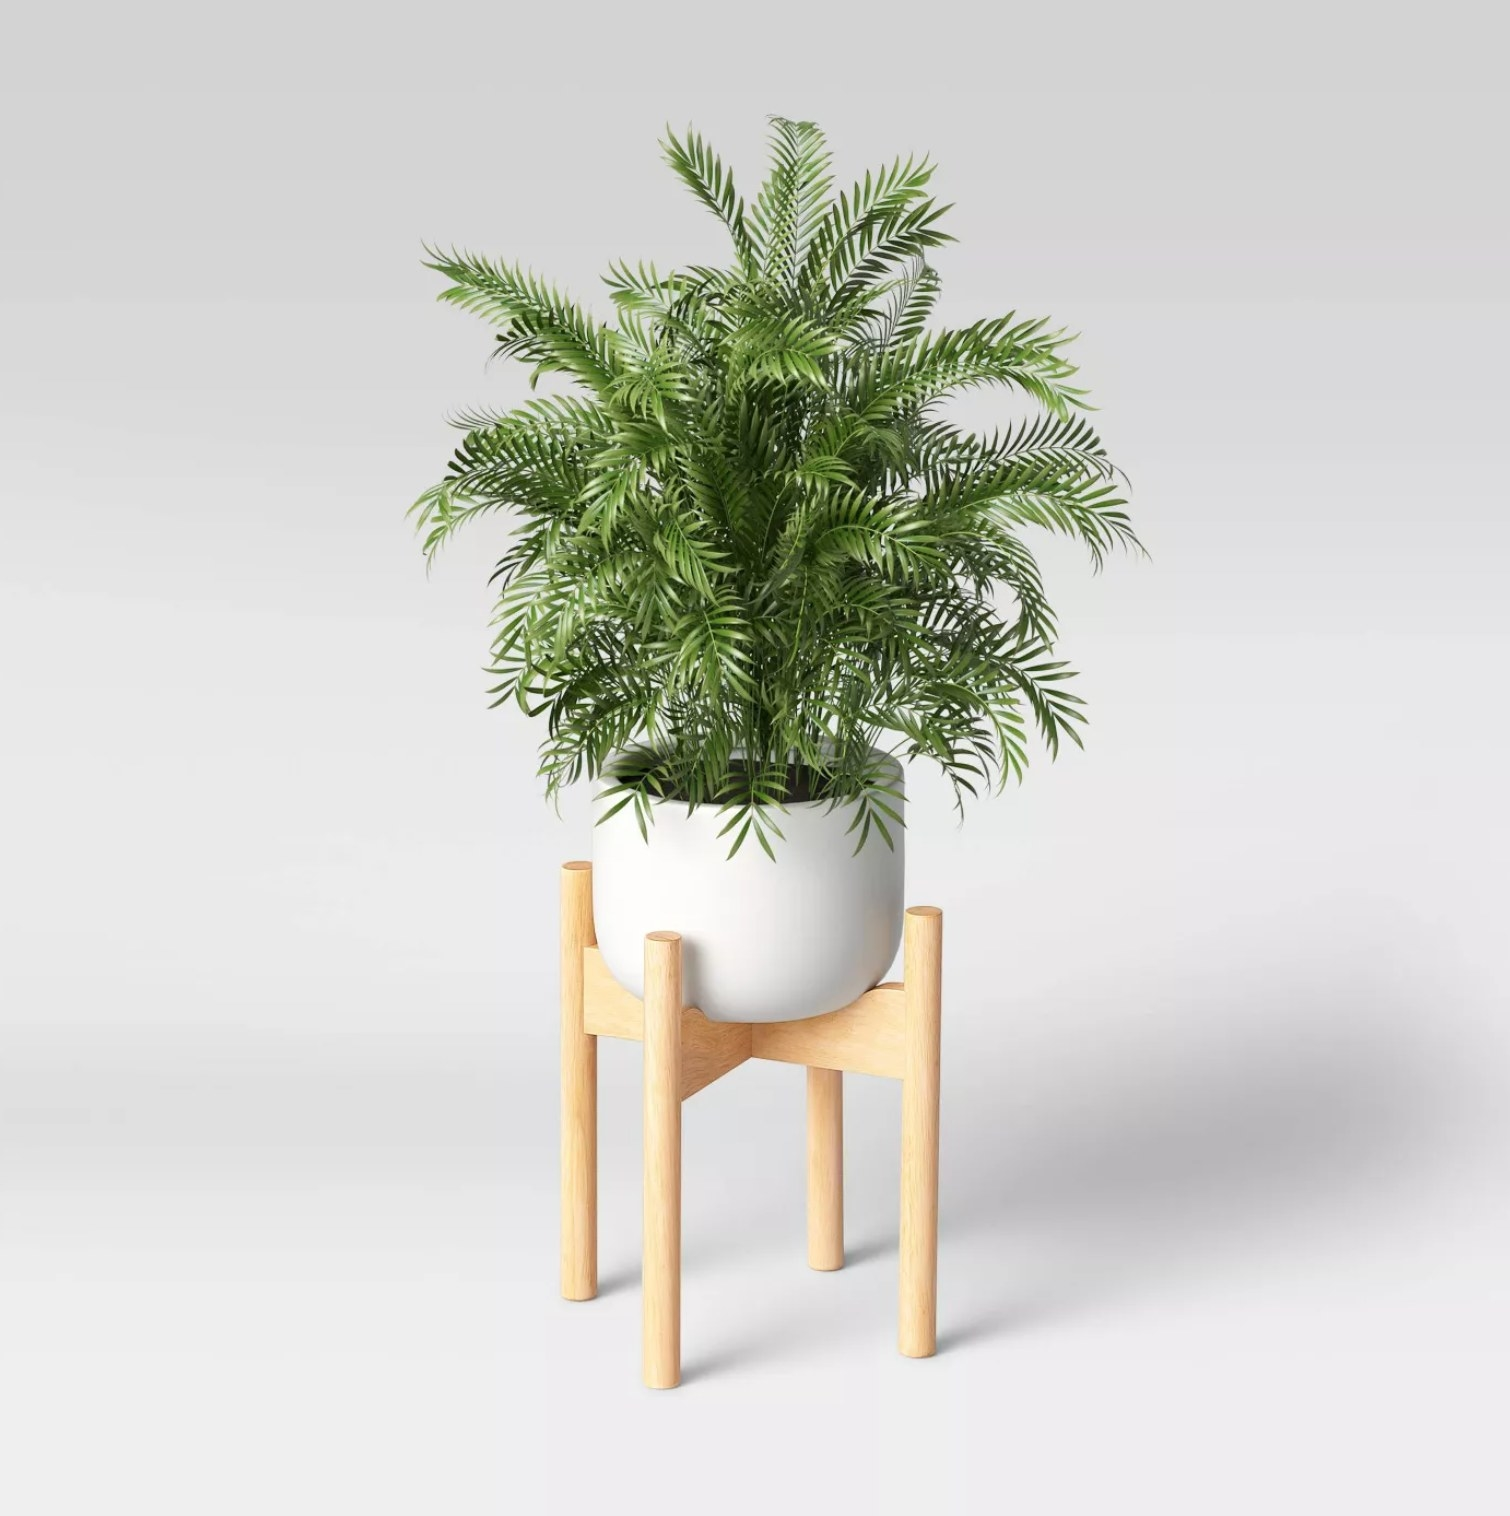 The planter with a plant in it